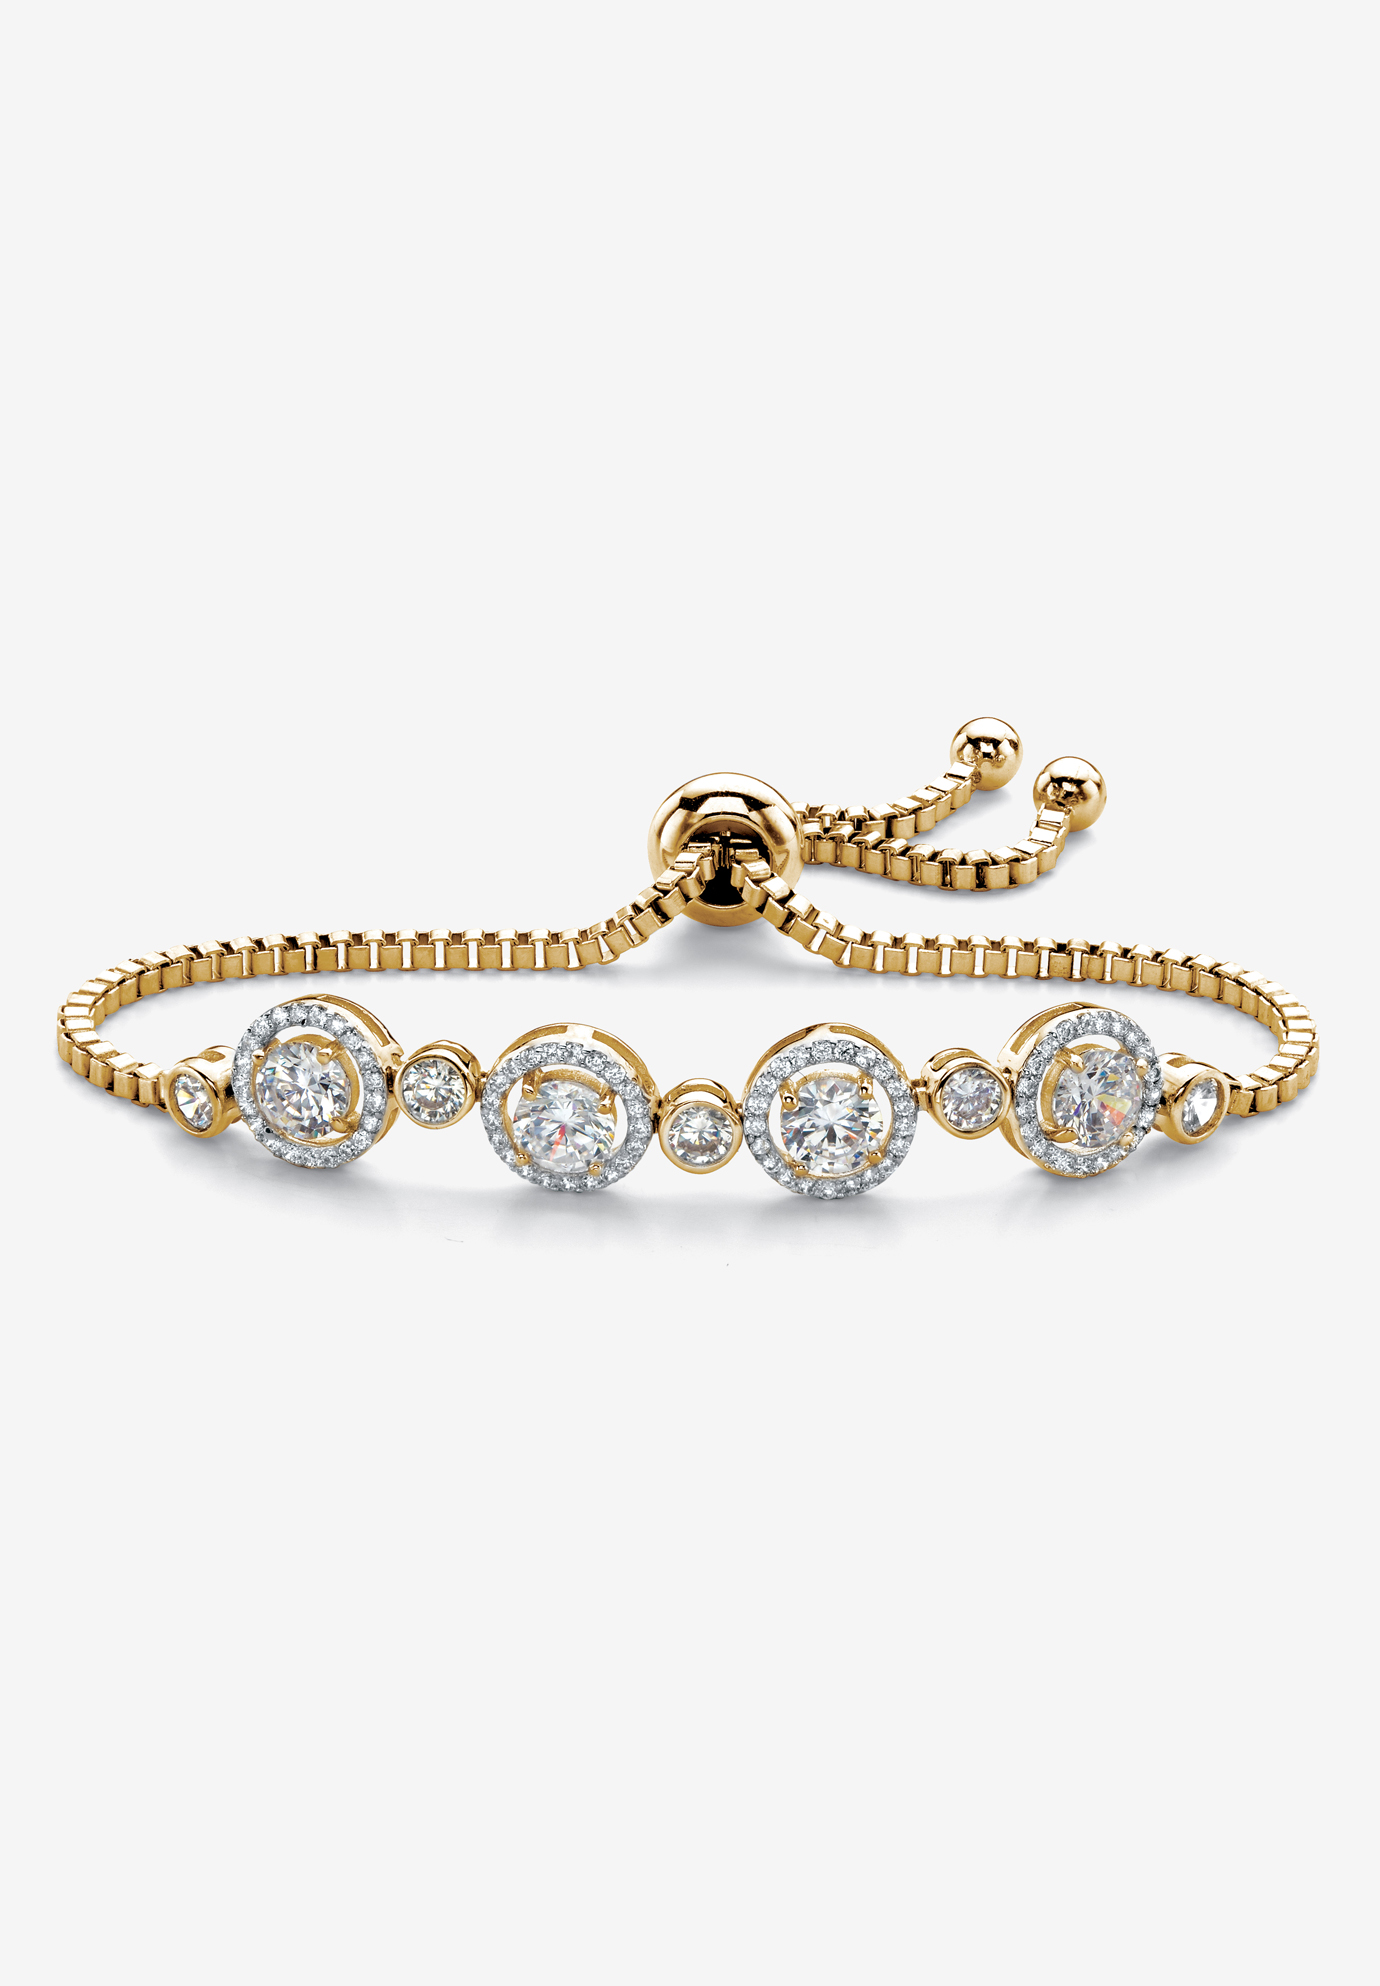 "Yellow Gold-Plated Halo Strand Bracelet (8mm), CZ, 9"" Adjustable, YELLOW GOLD"